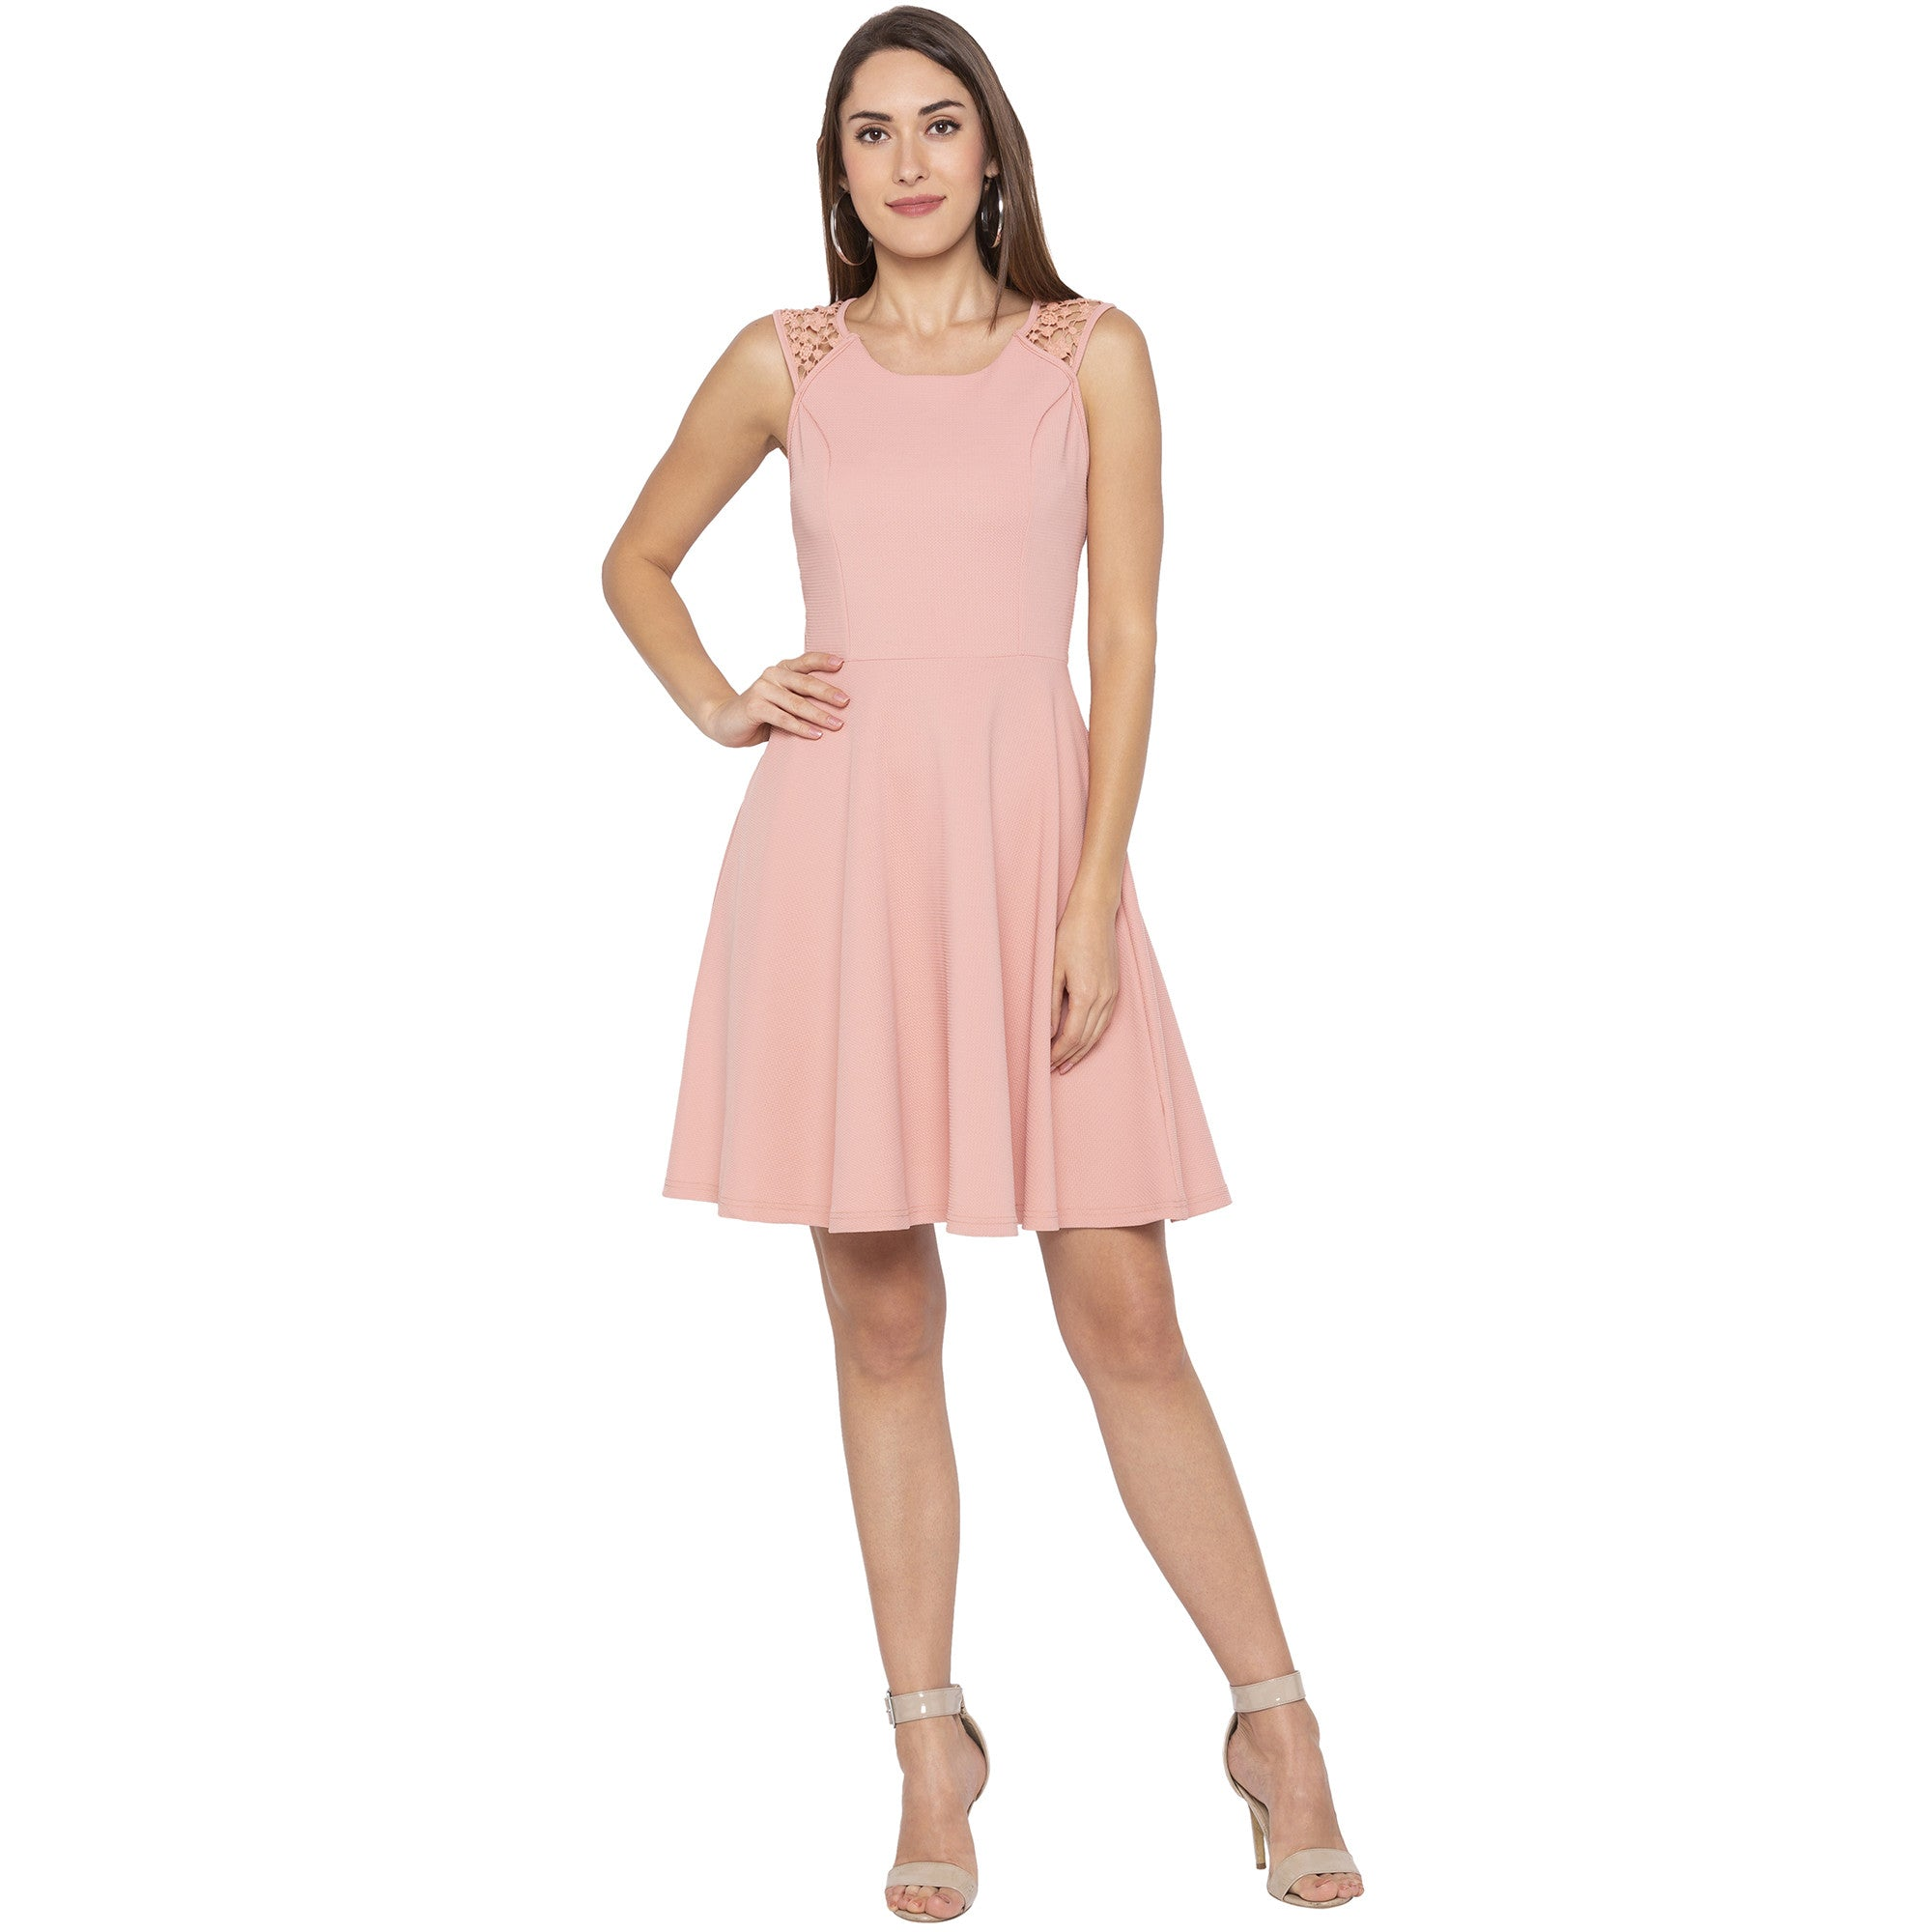 Casual Pink Color Solid Fit and Flare Dress-1